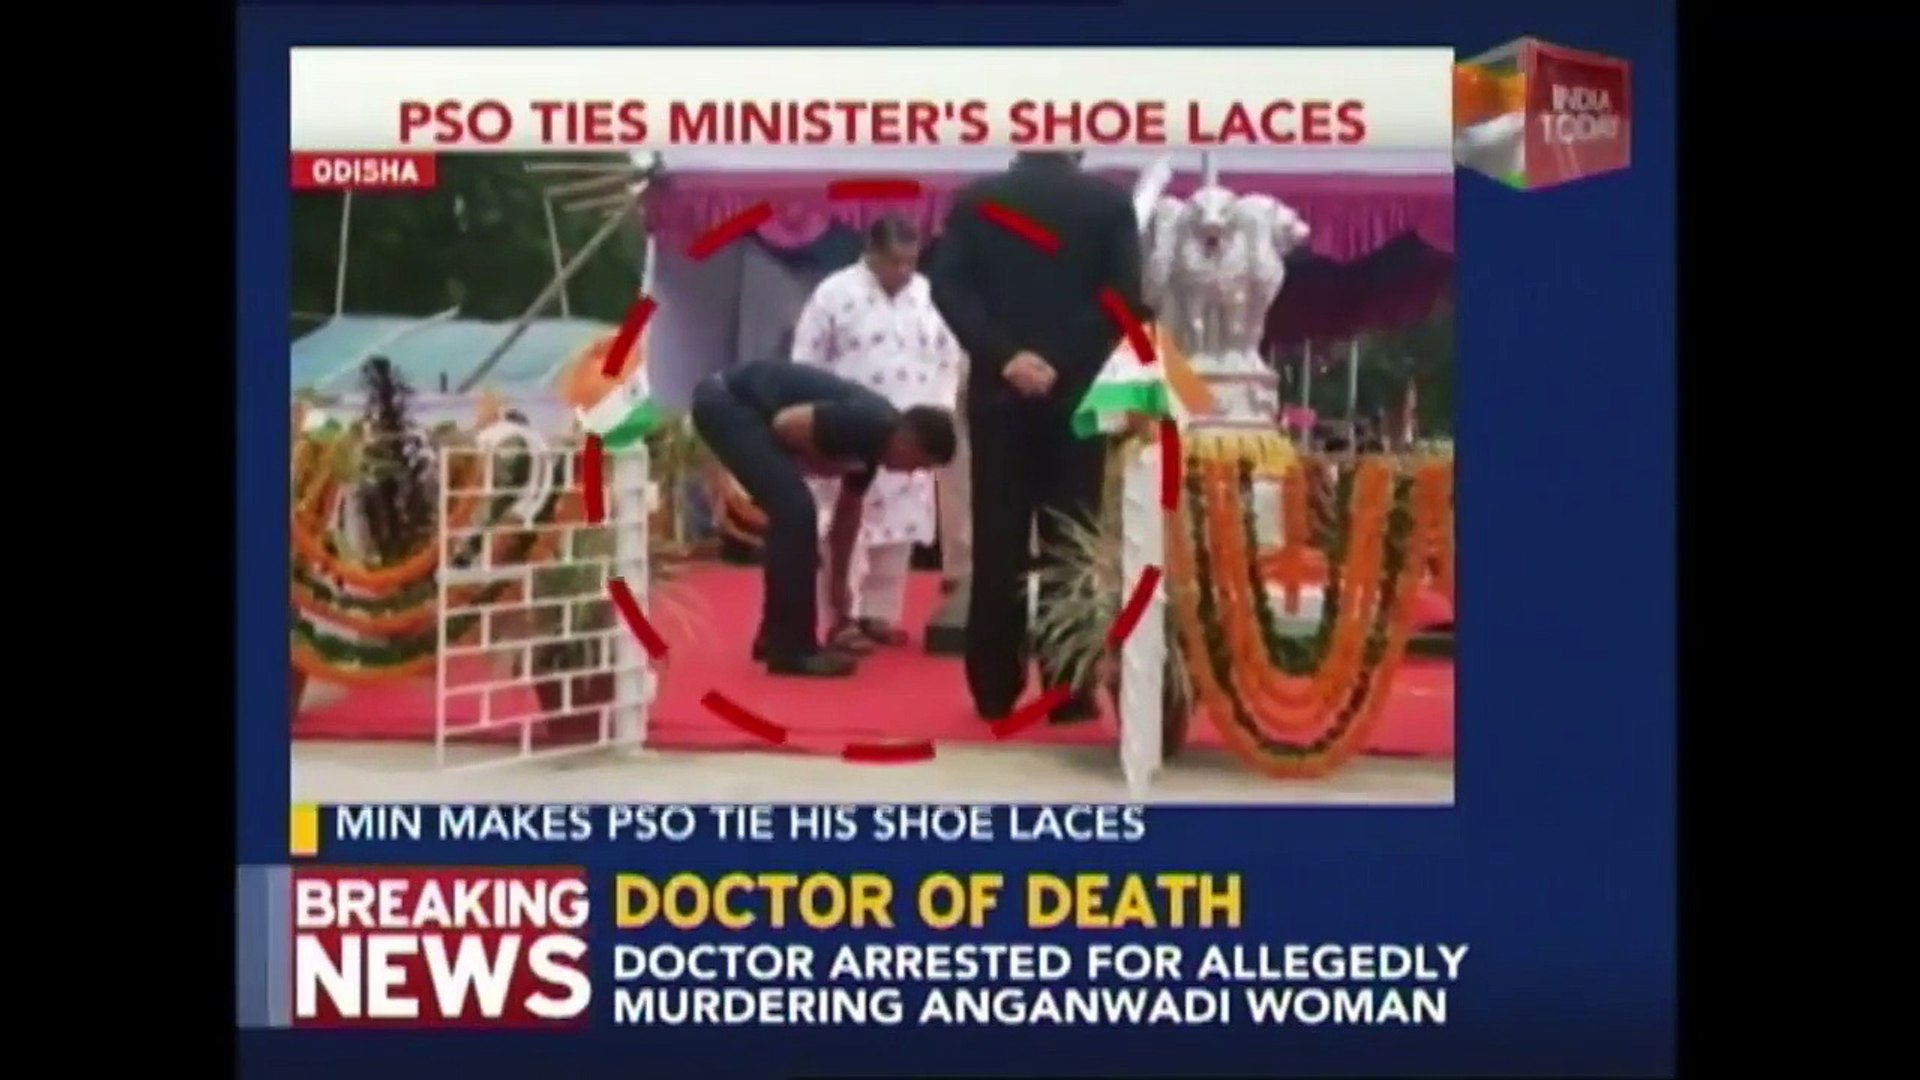 Odisha Minister Made Security Officer To Tie His Shoe Laces